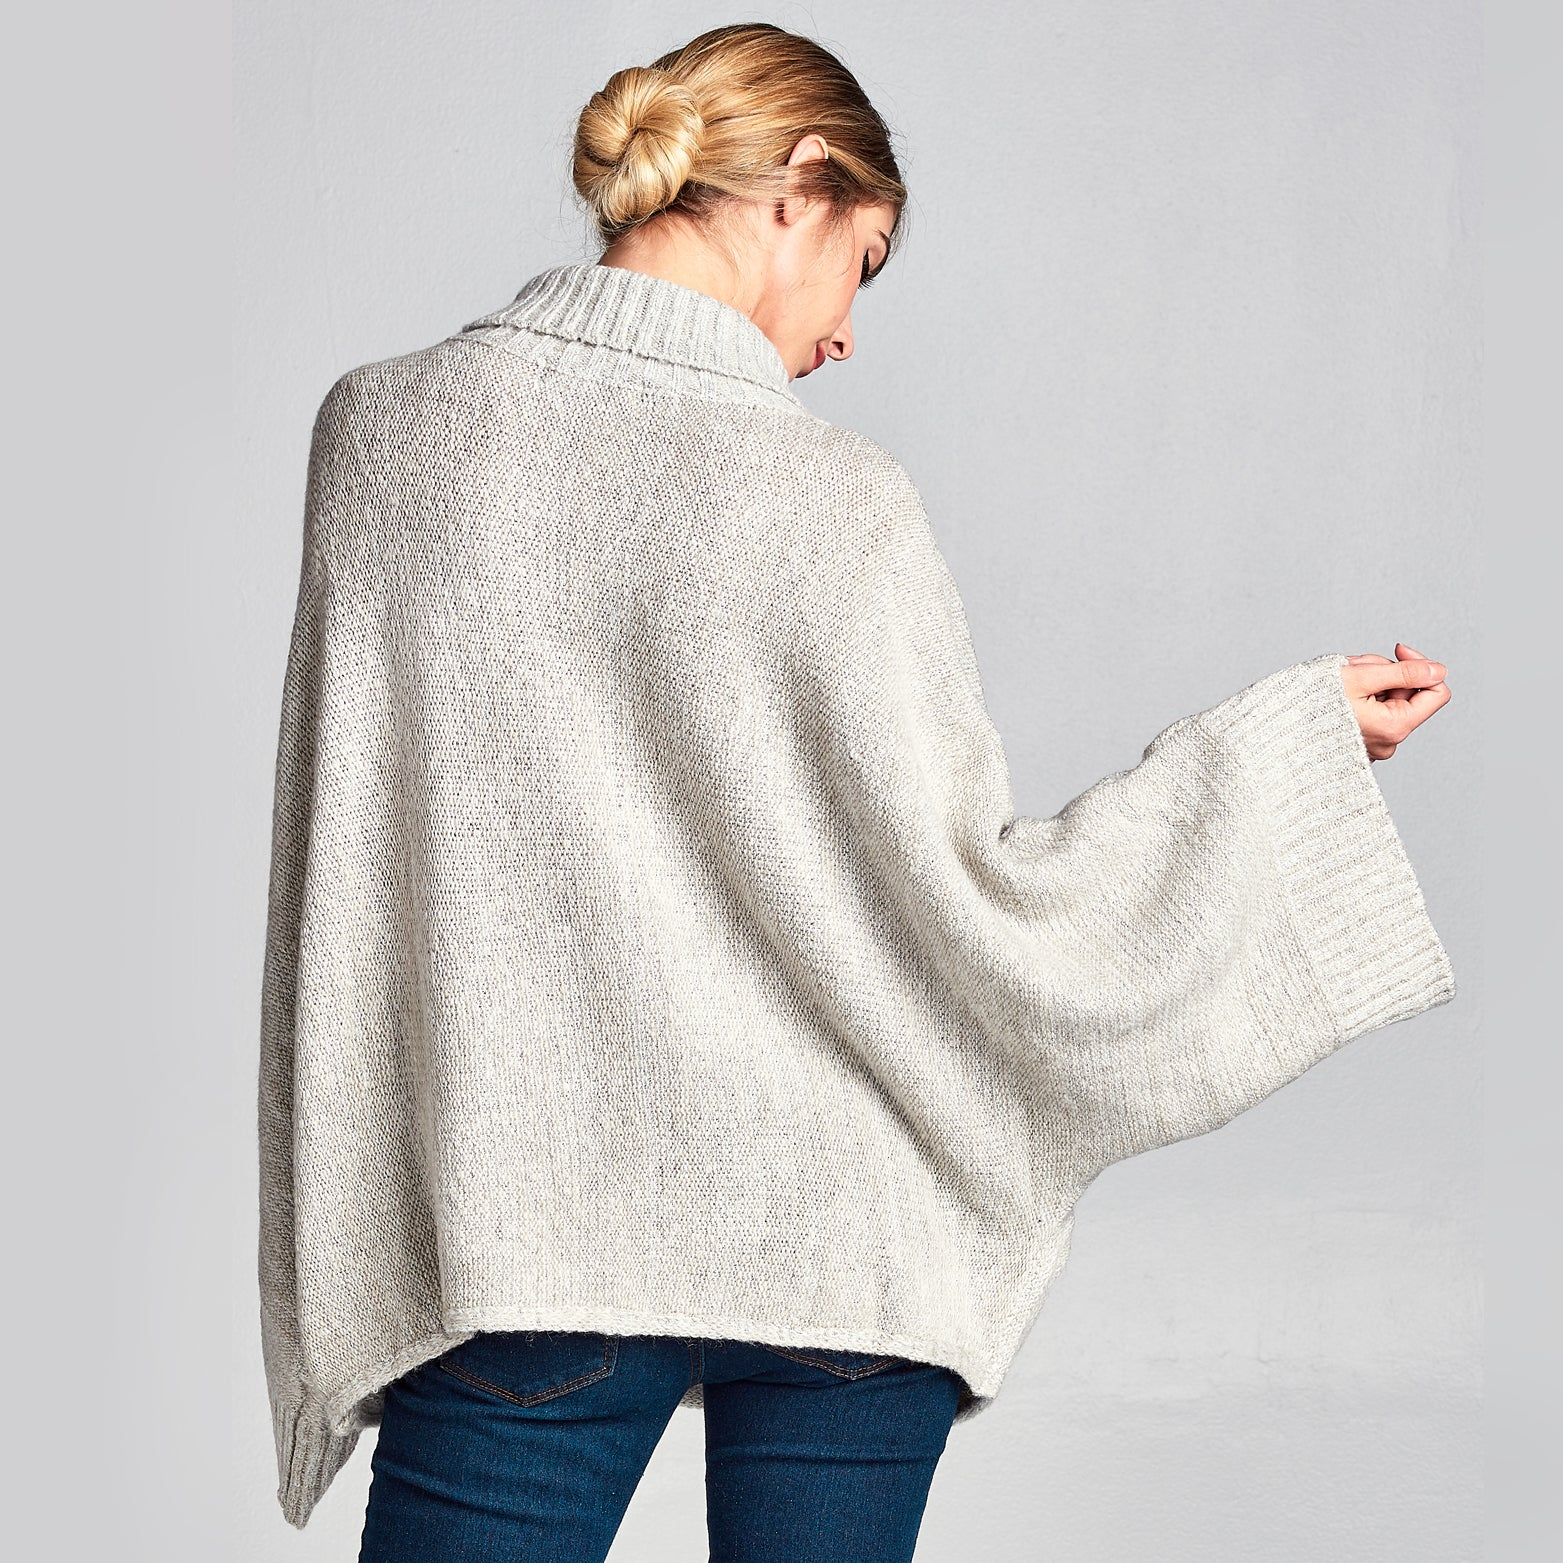 Cowl Neck Bell Sleeve Sweater - Love, Kuza